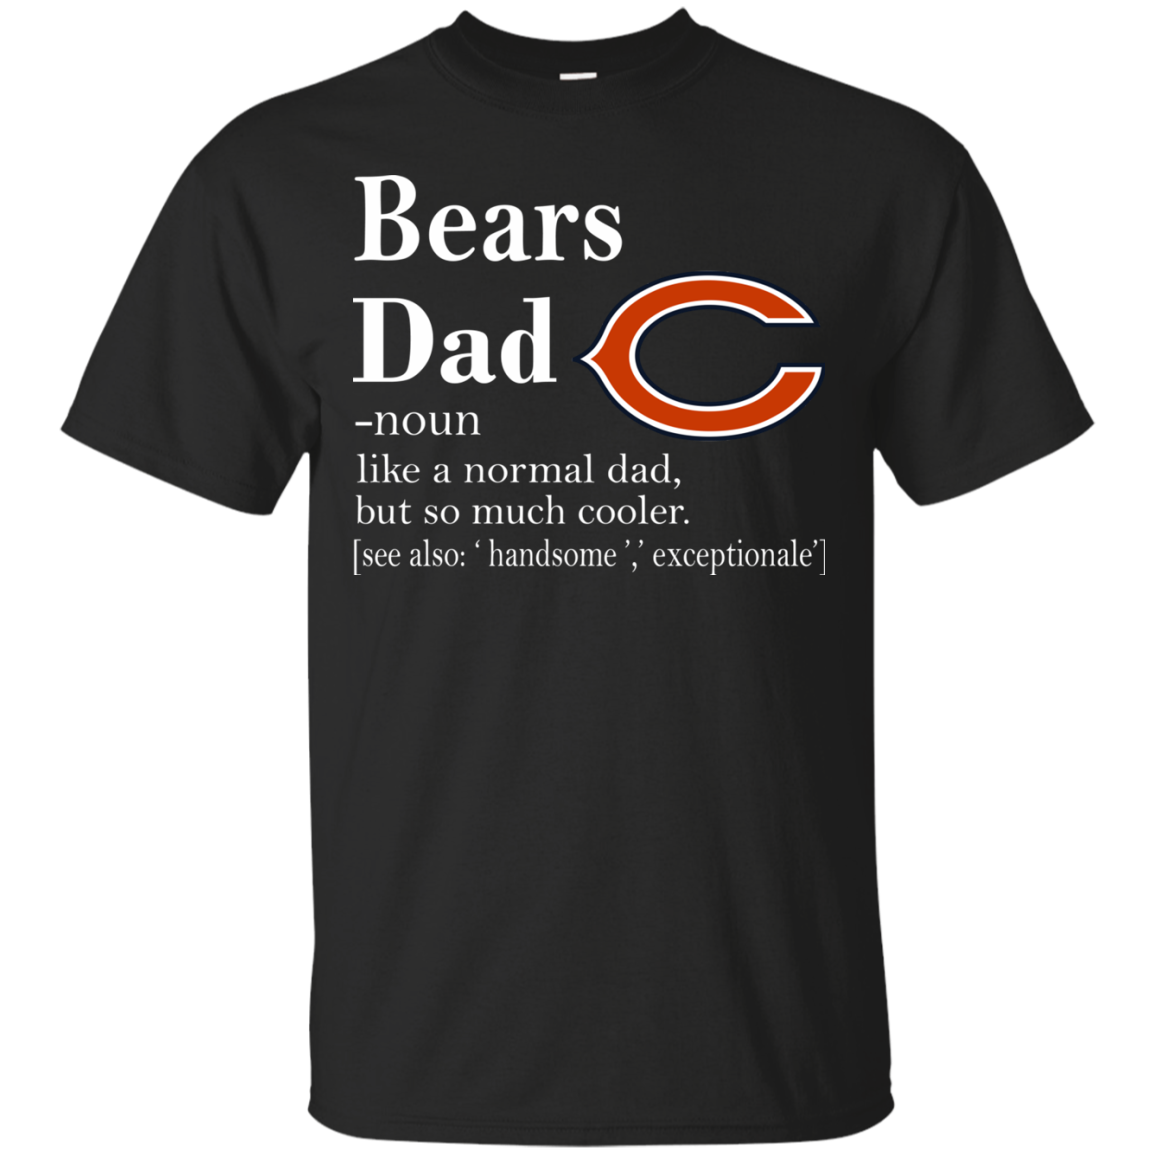 Order Chicago Bears Like A Normal Dad But So Much Cooler Shirt T Shir